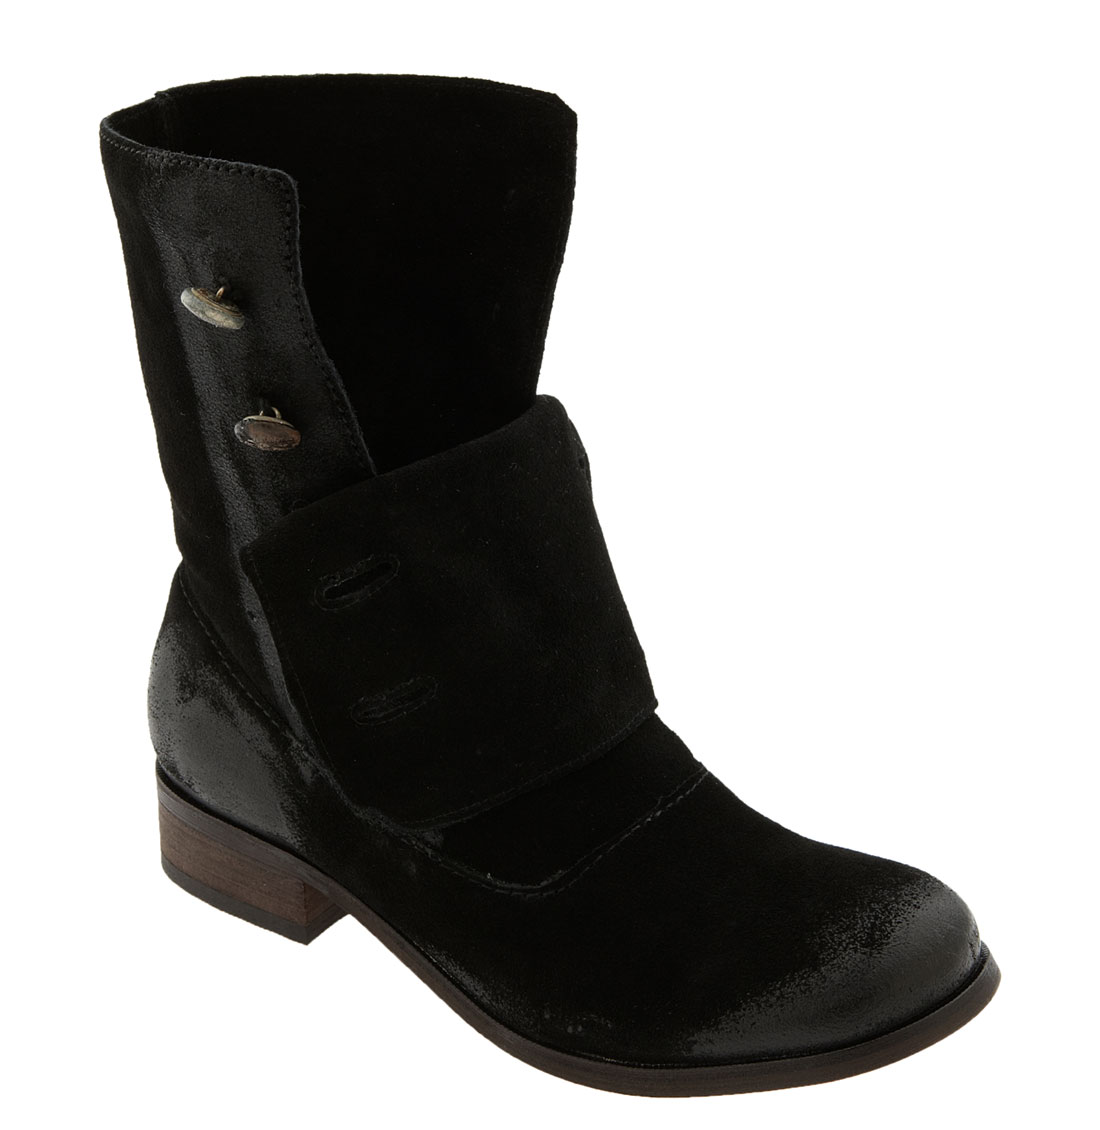 steven by steve madden adeson boot in black black